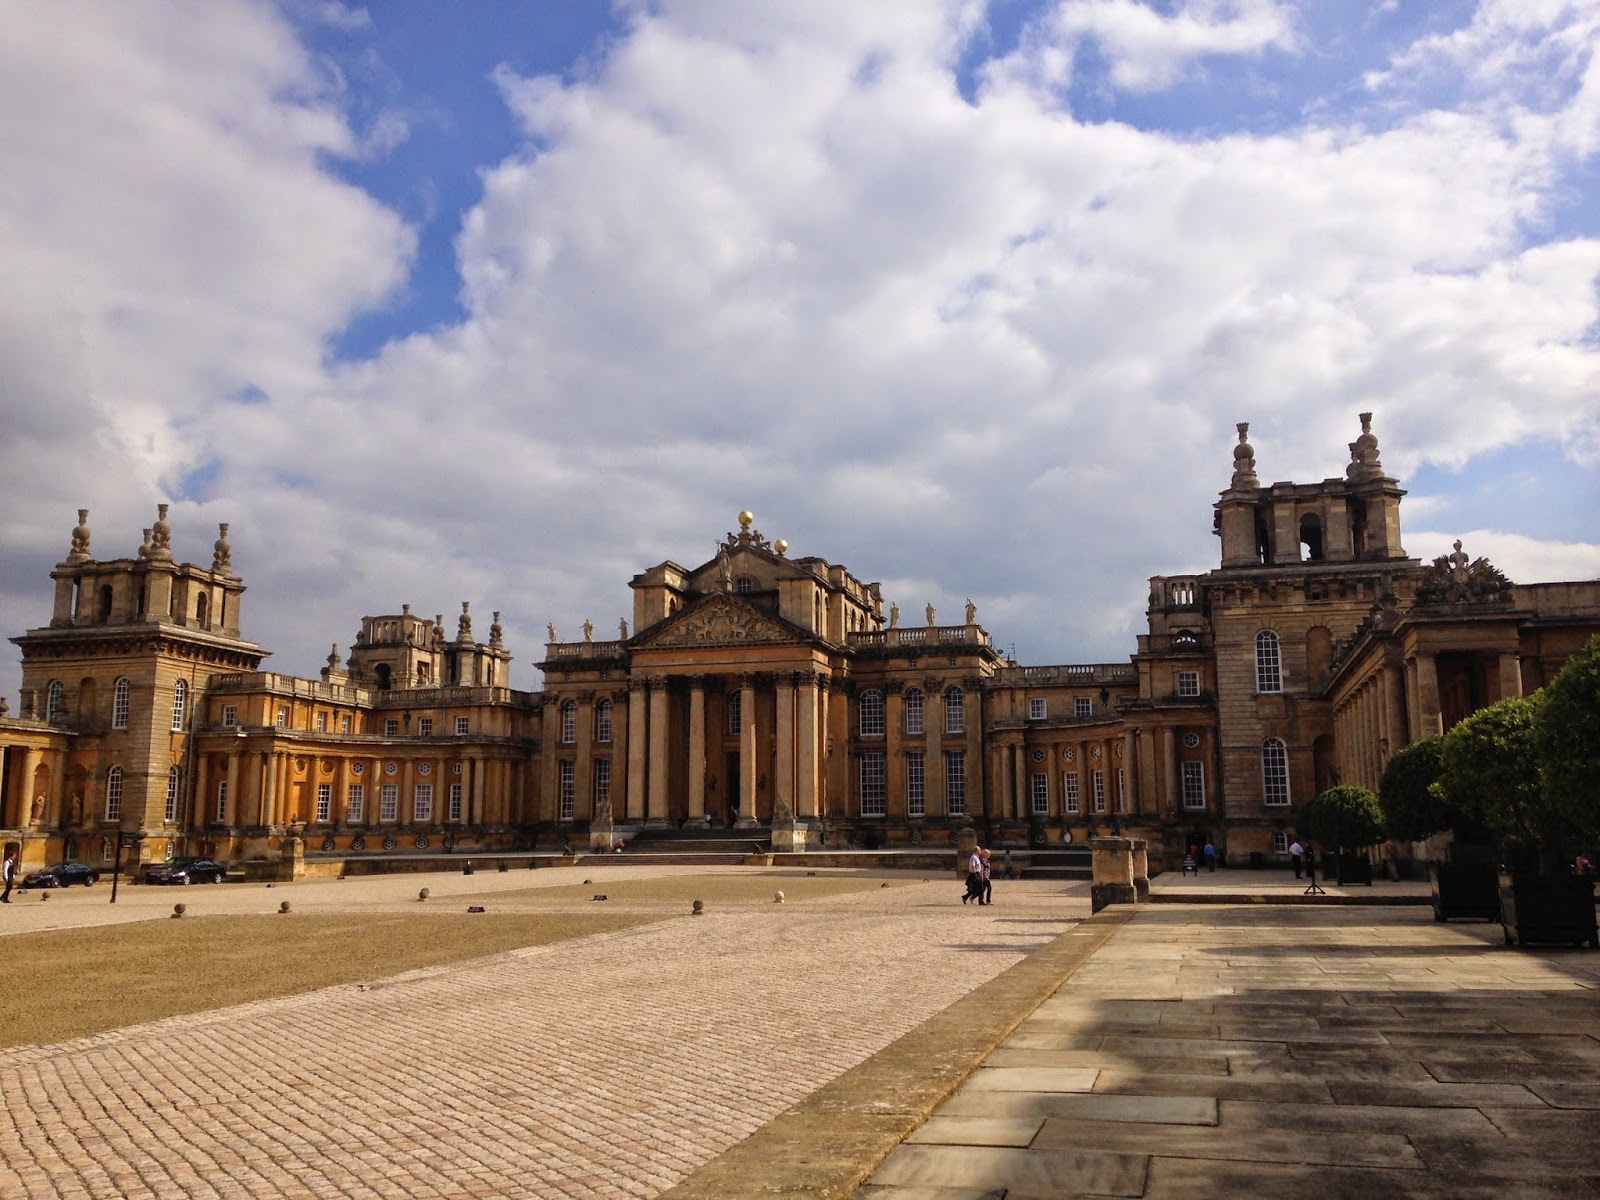 Blenheim Palace Archives - Brainstain Entertainment News